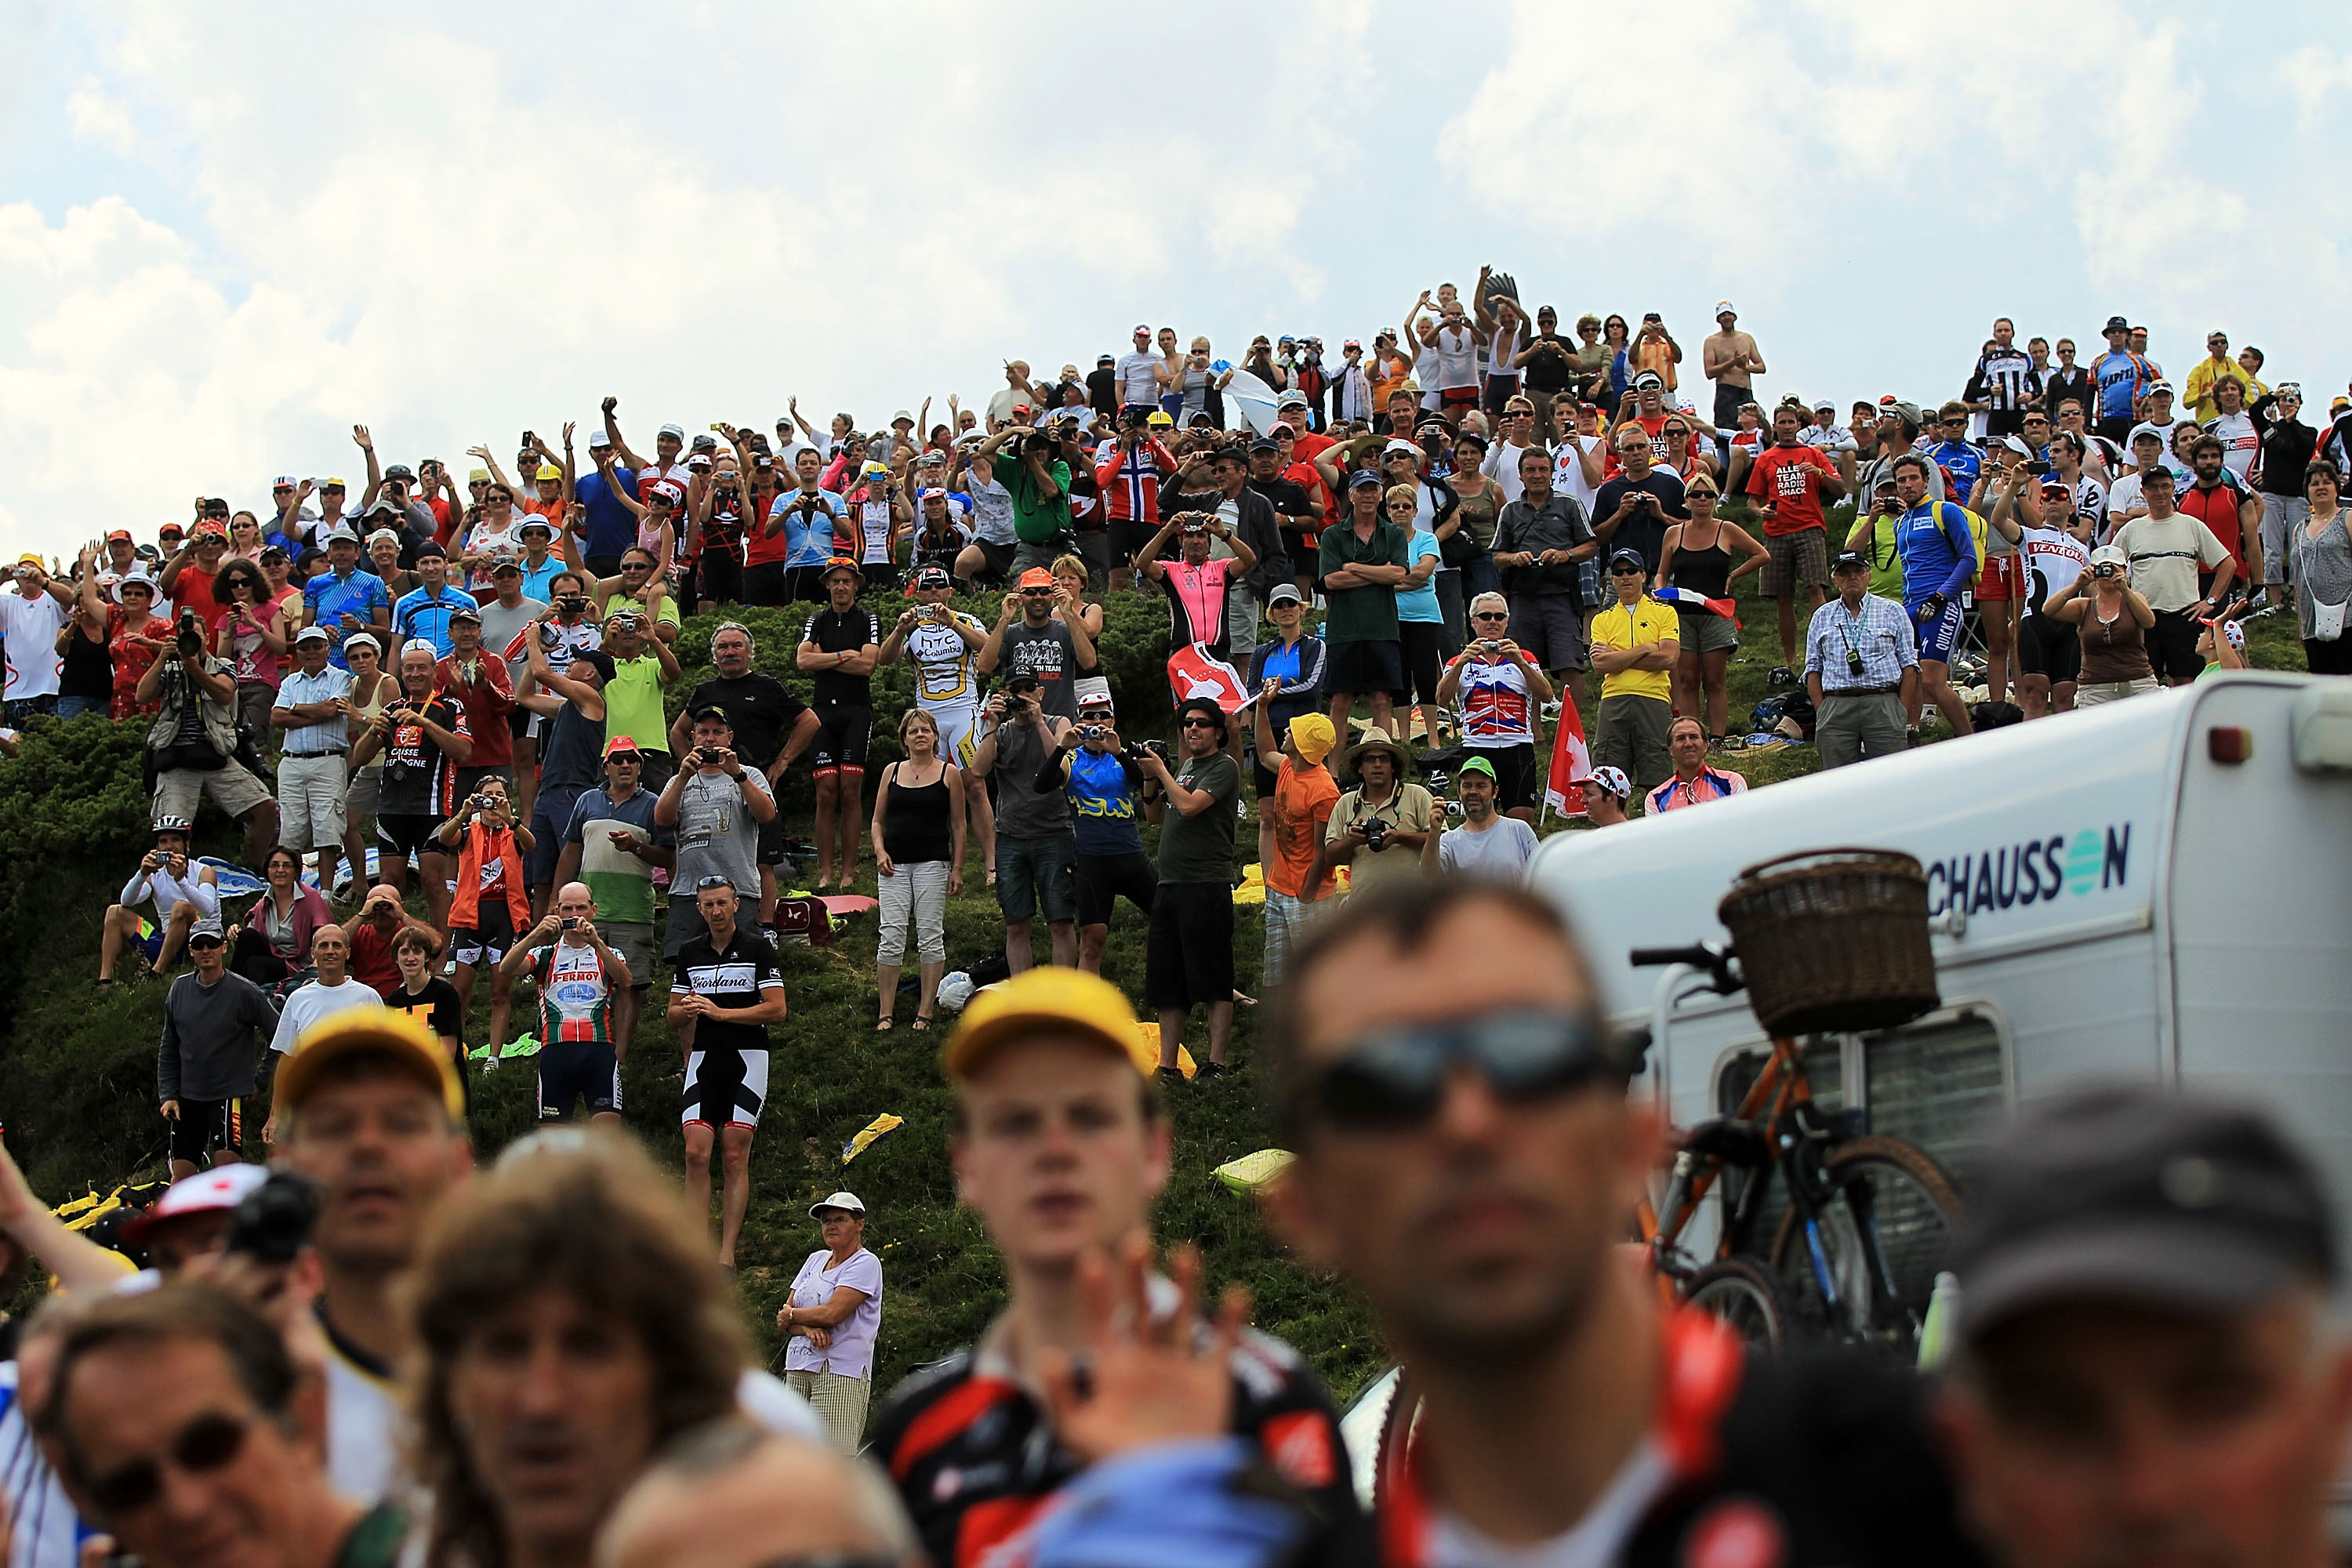 PAU, FRANCE - JULY 20: Tens of thousands of fans lined the roads of stage 16 of the Tour de France on July 20, 2010 in Pau, France. The stage, between Bagneres-de-Luchon and Pau, featured four major climbs including the Col du Tourmalet. French rider Pier